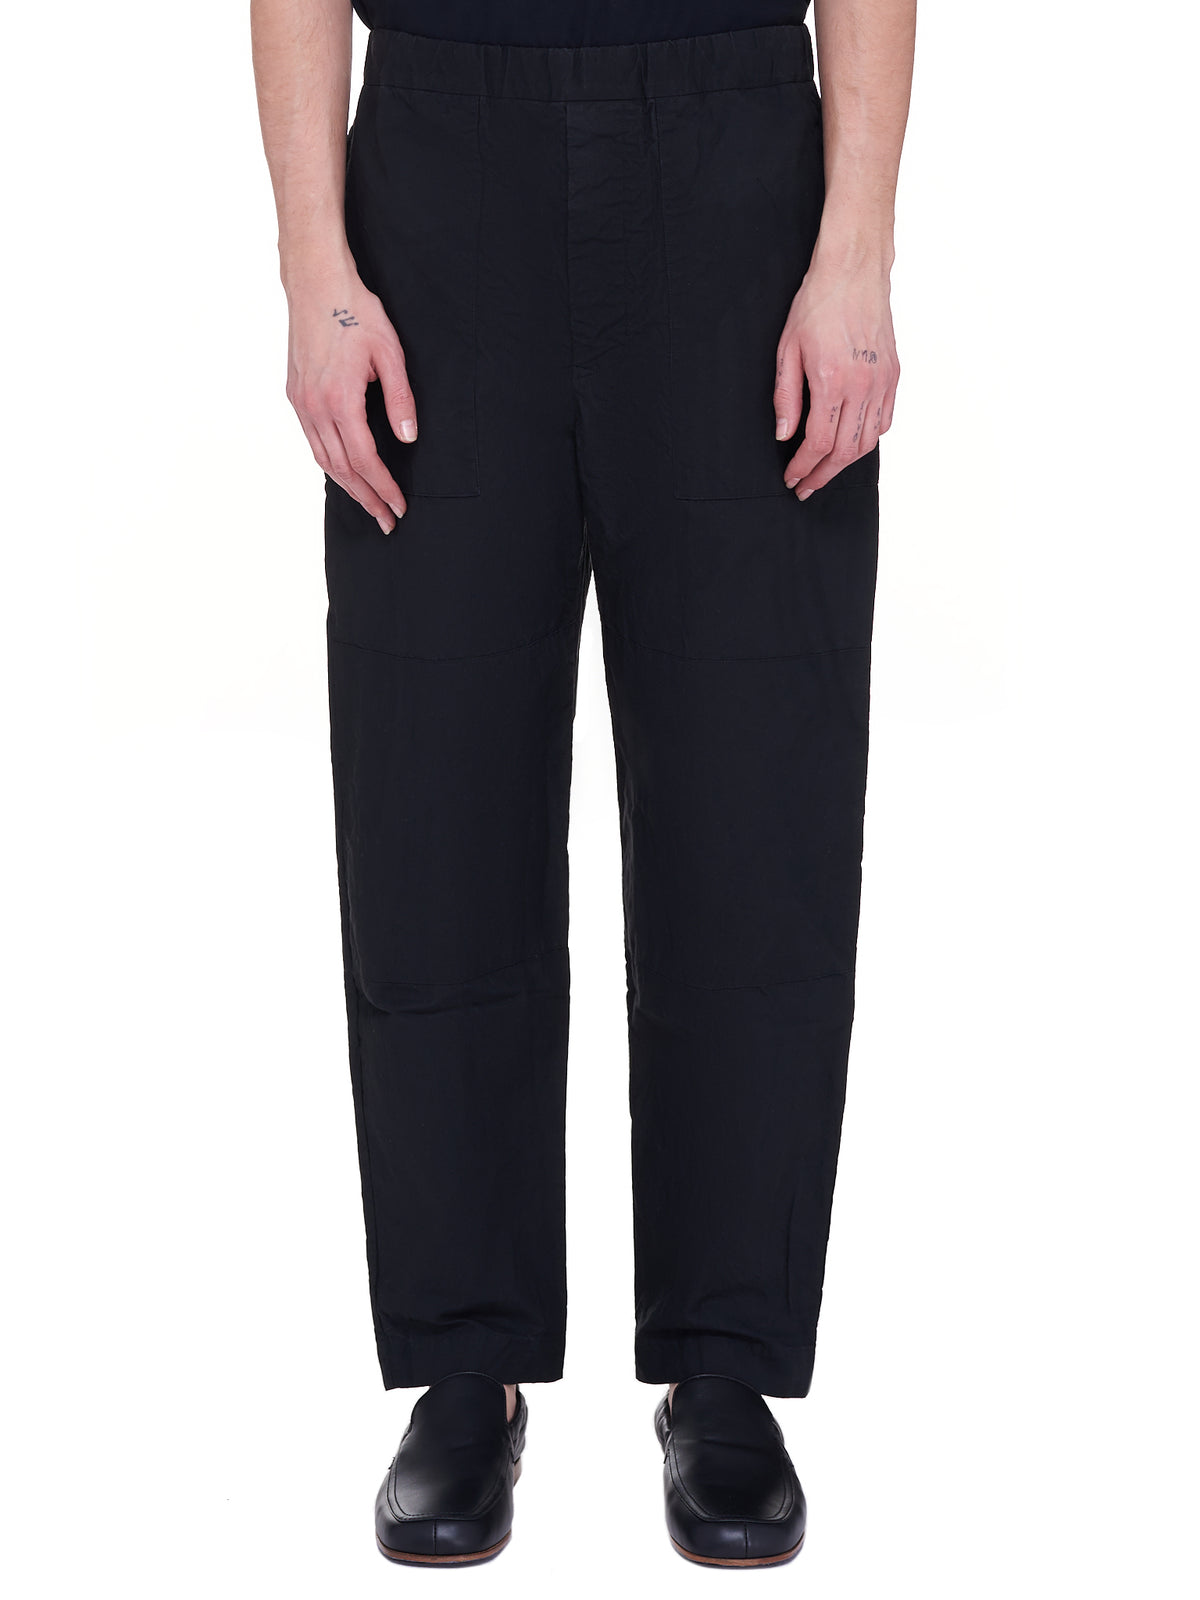 Jog Pantalon Trousers (16HP213-BLACK)